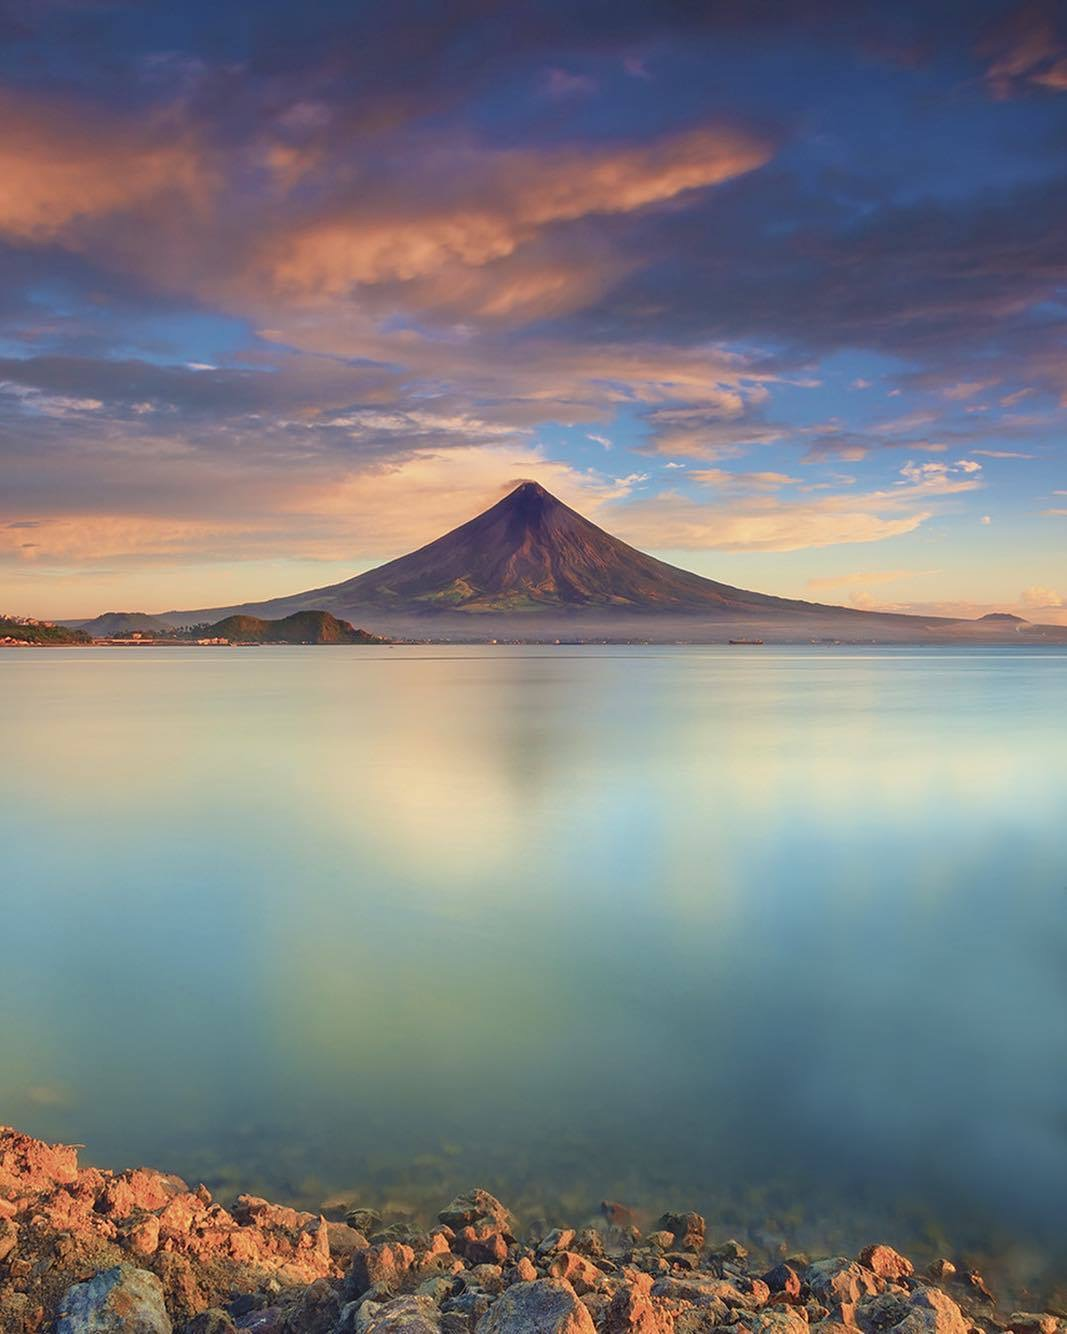 Mount+Mayon+Volcano+Philippines